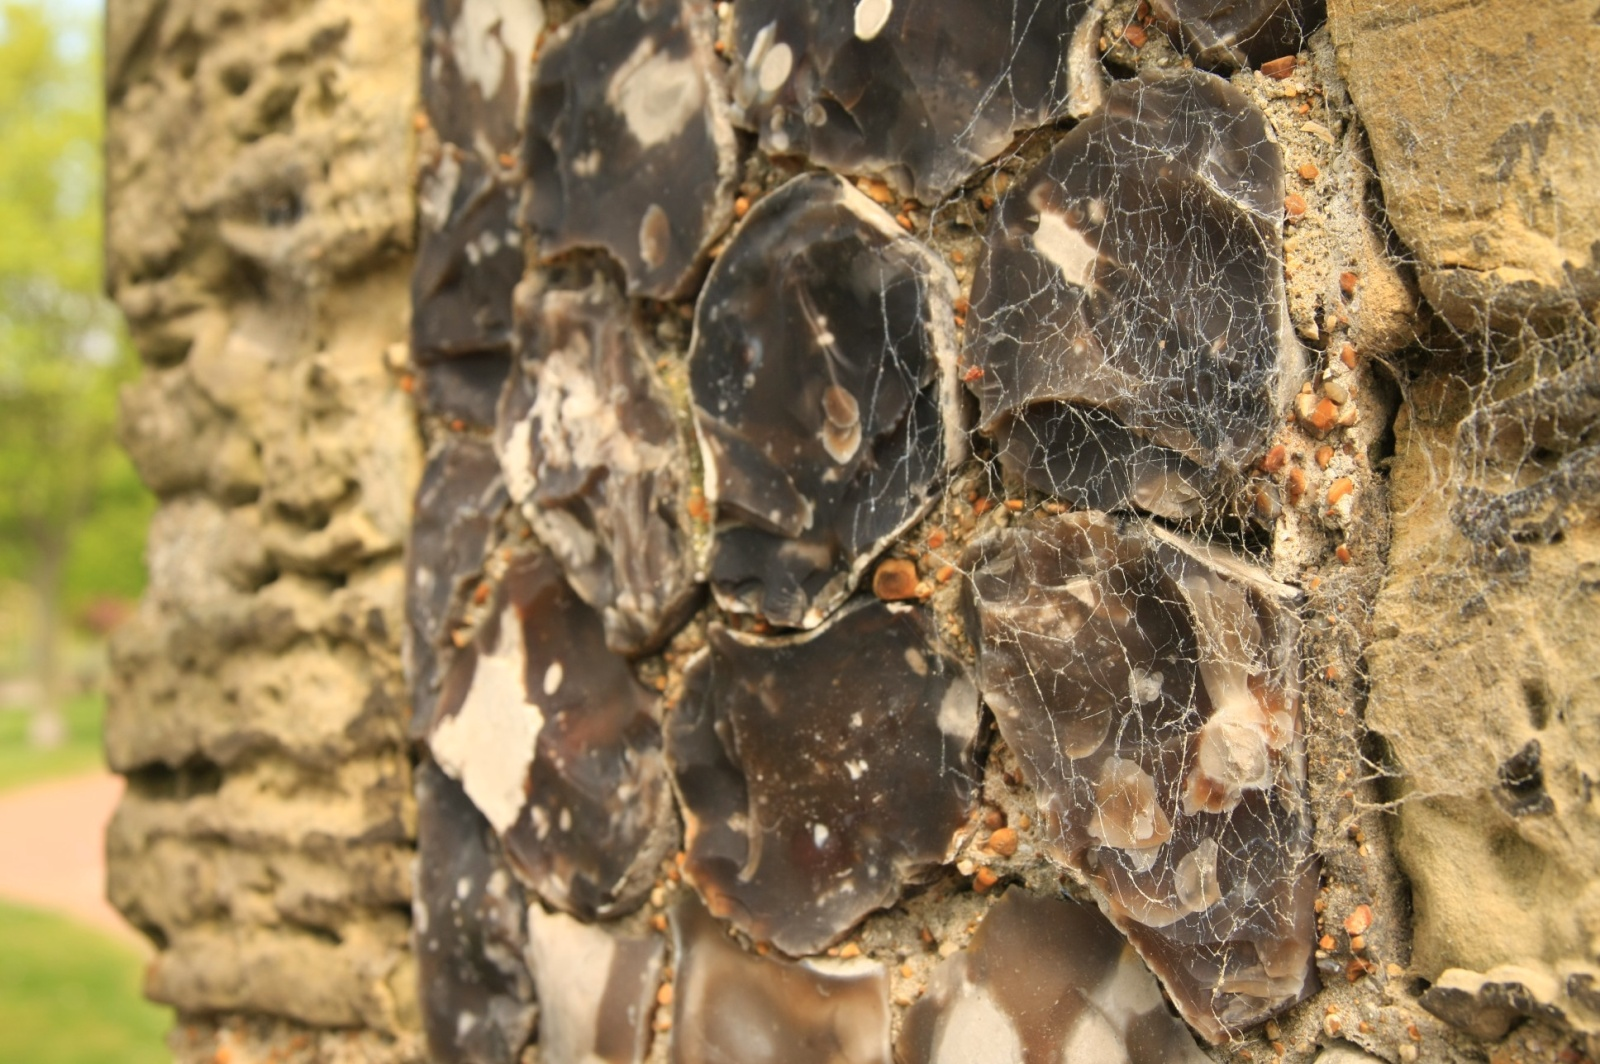 The walls of Brighton's oldest building - St. Nicholas' church - decorated with silicon